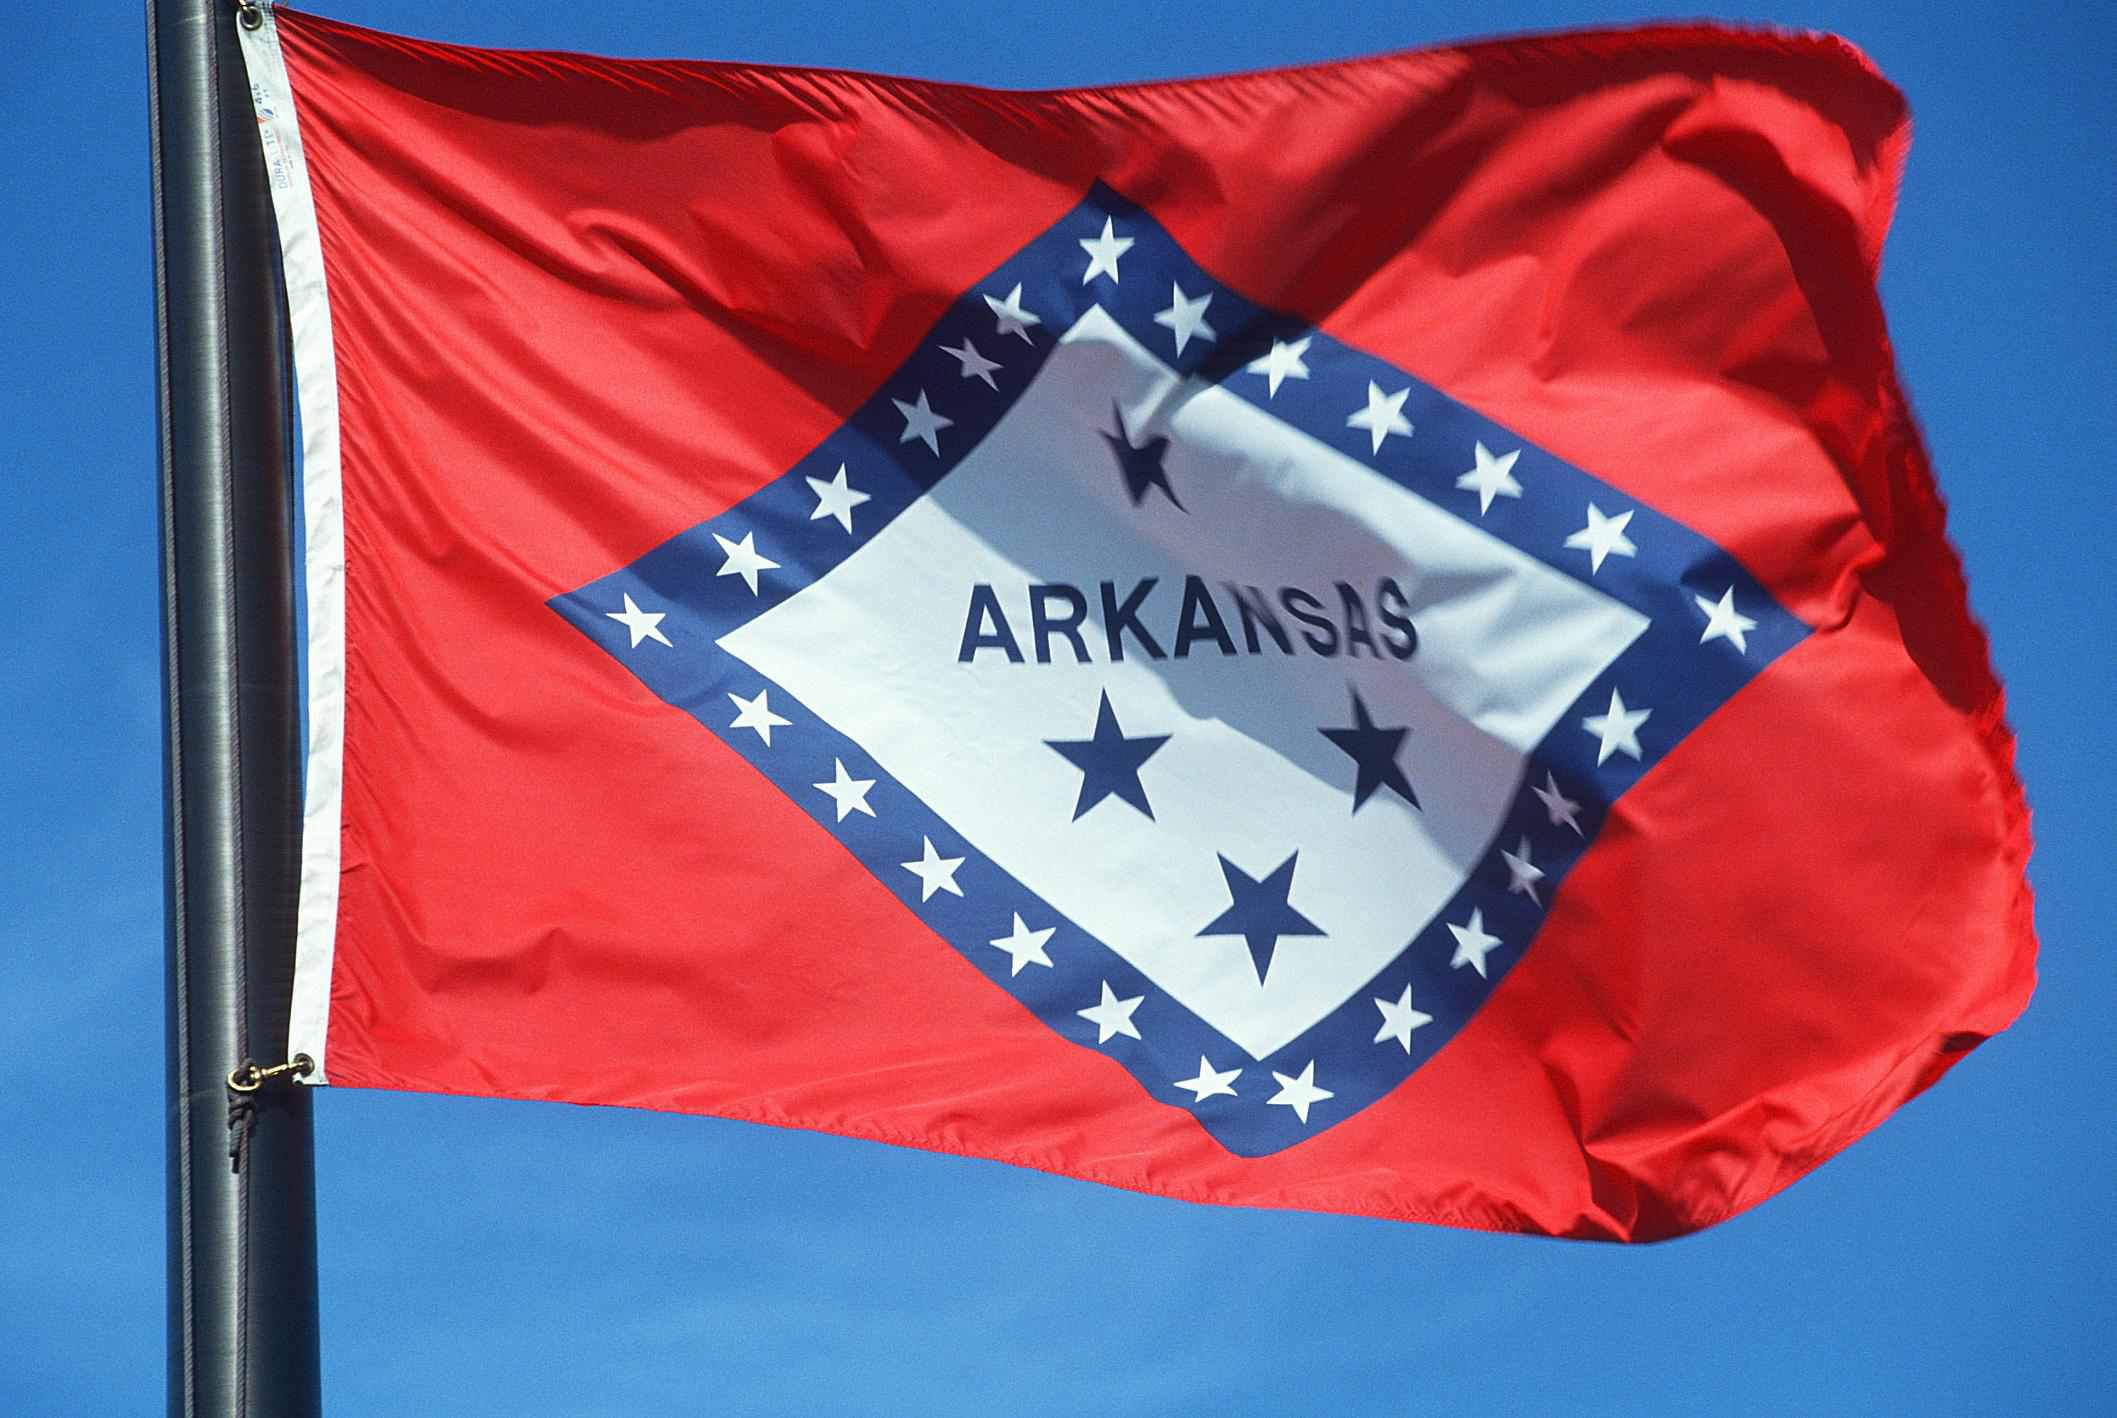 Arkansas flag - Fotosearch - GettyImages-124279641